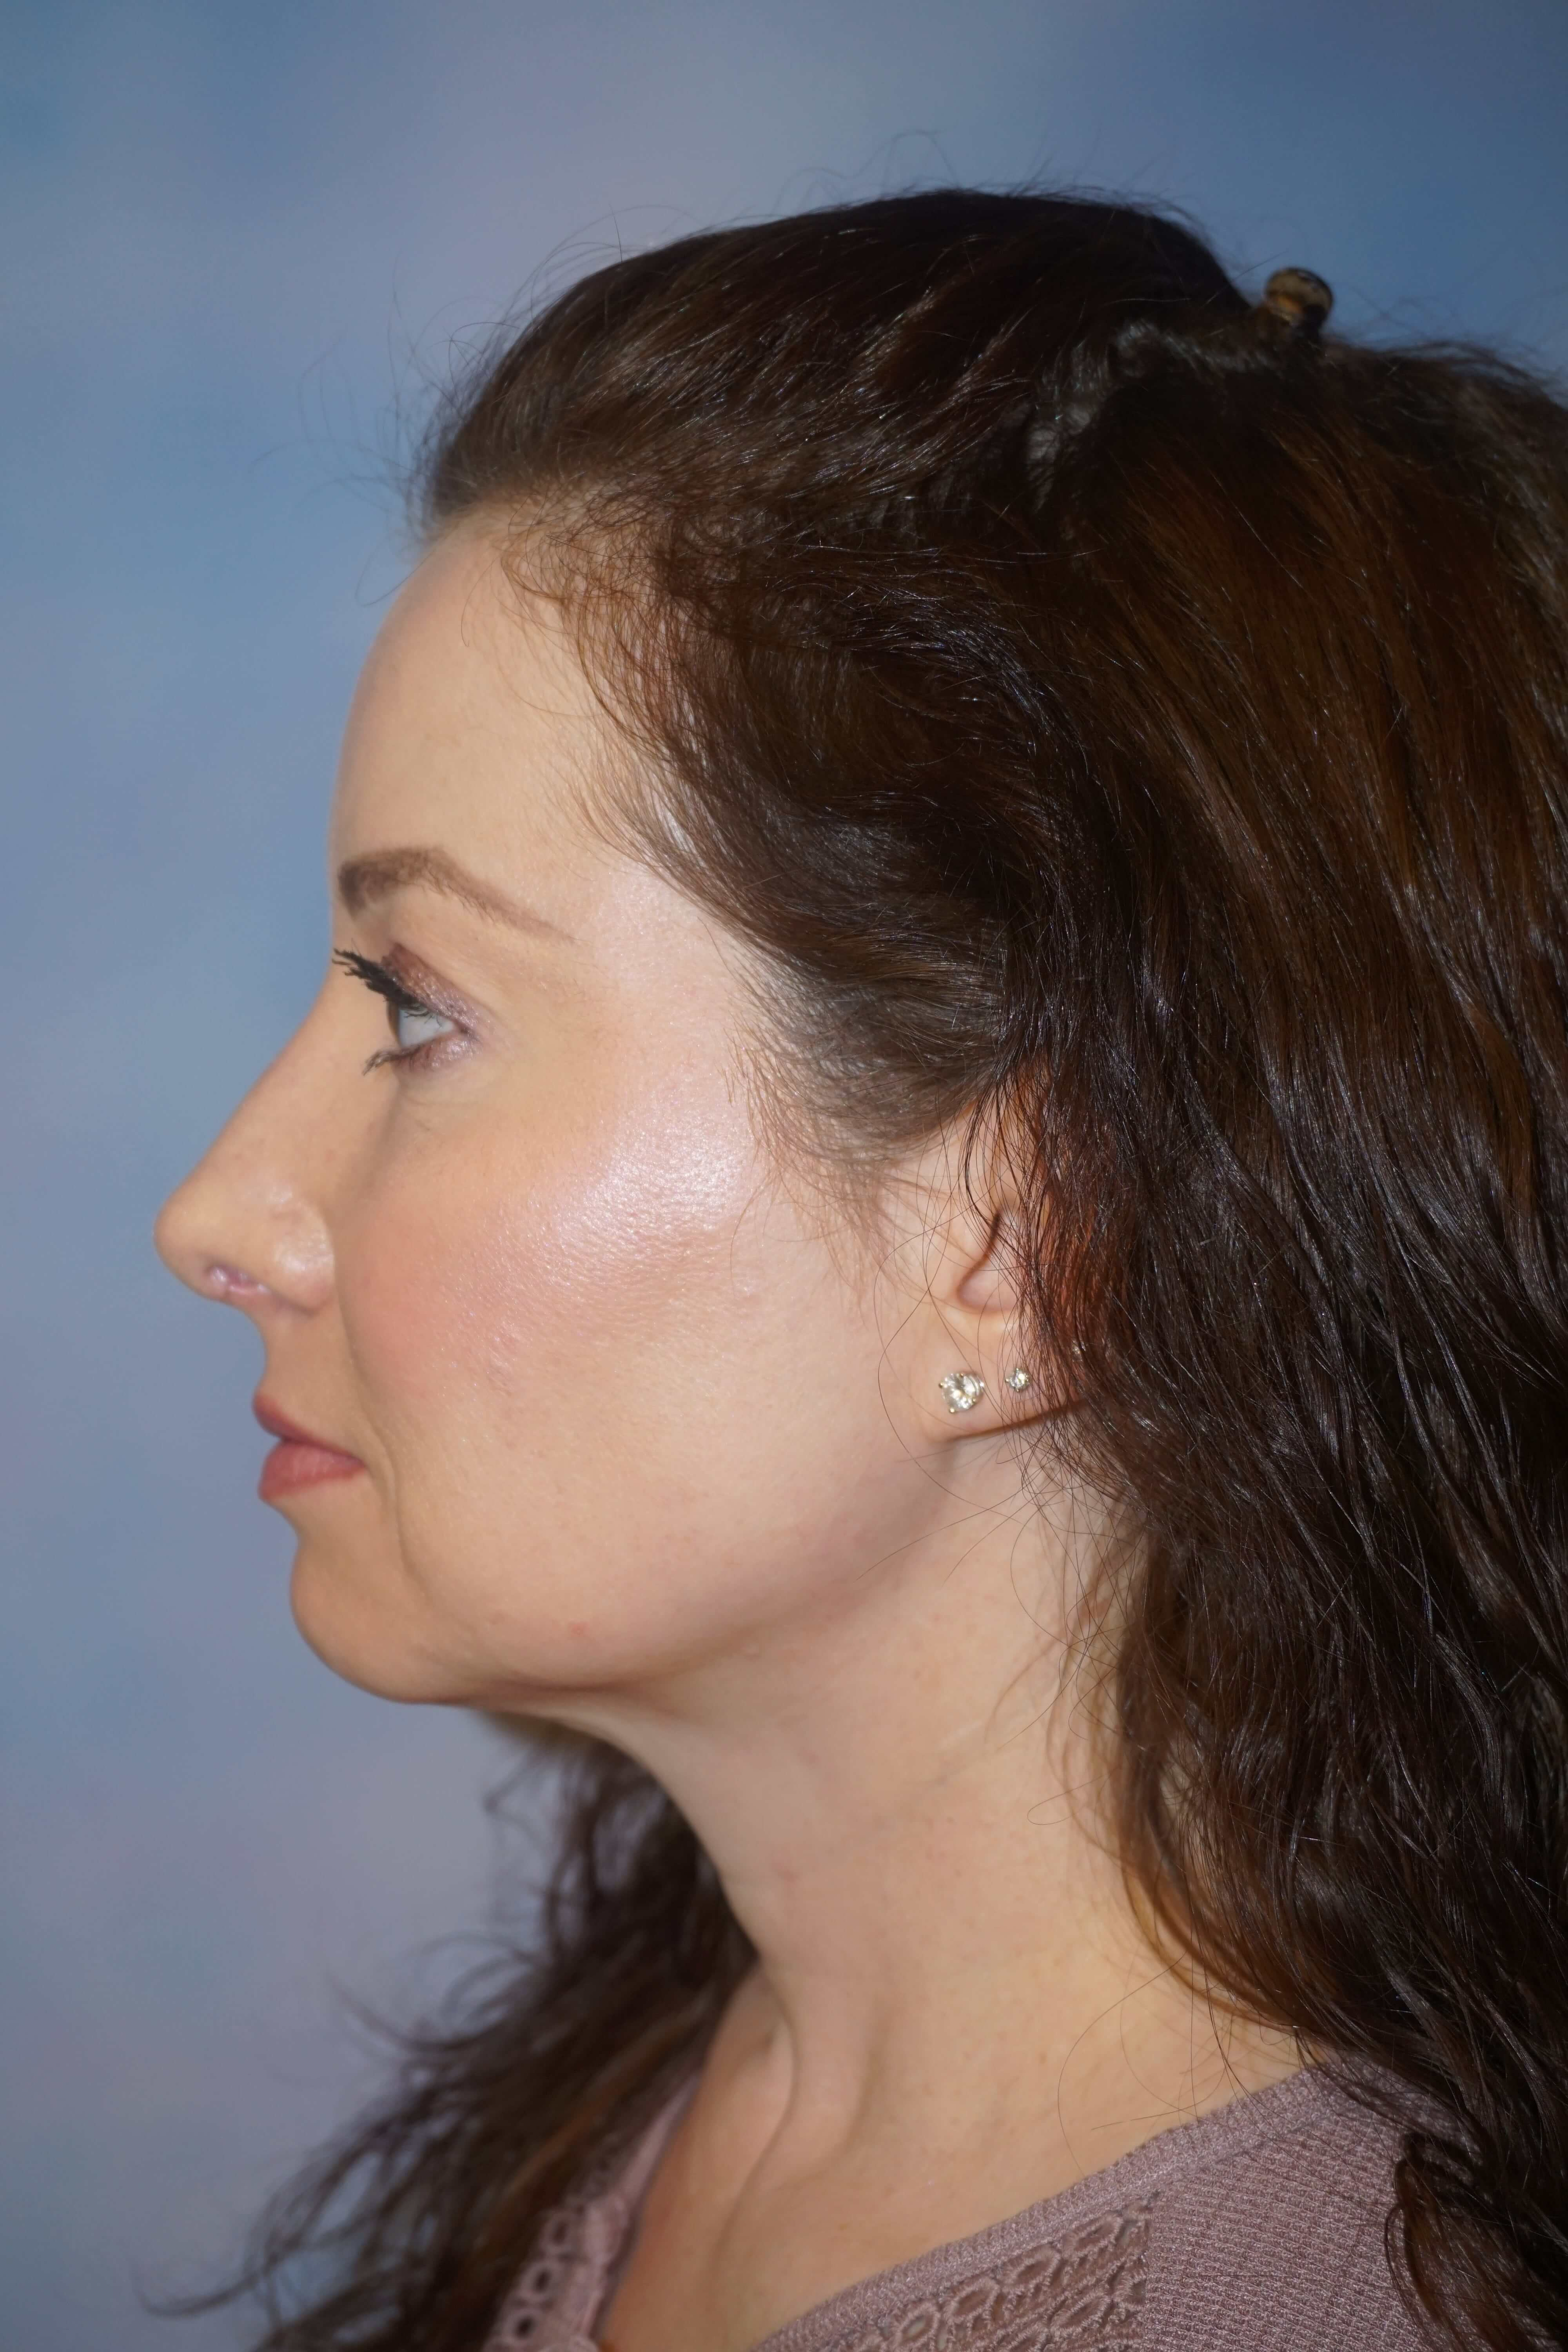 After Female Rhinoplasty Surgery